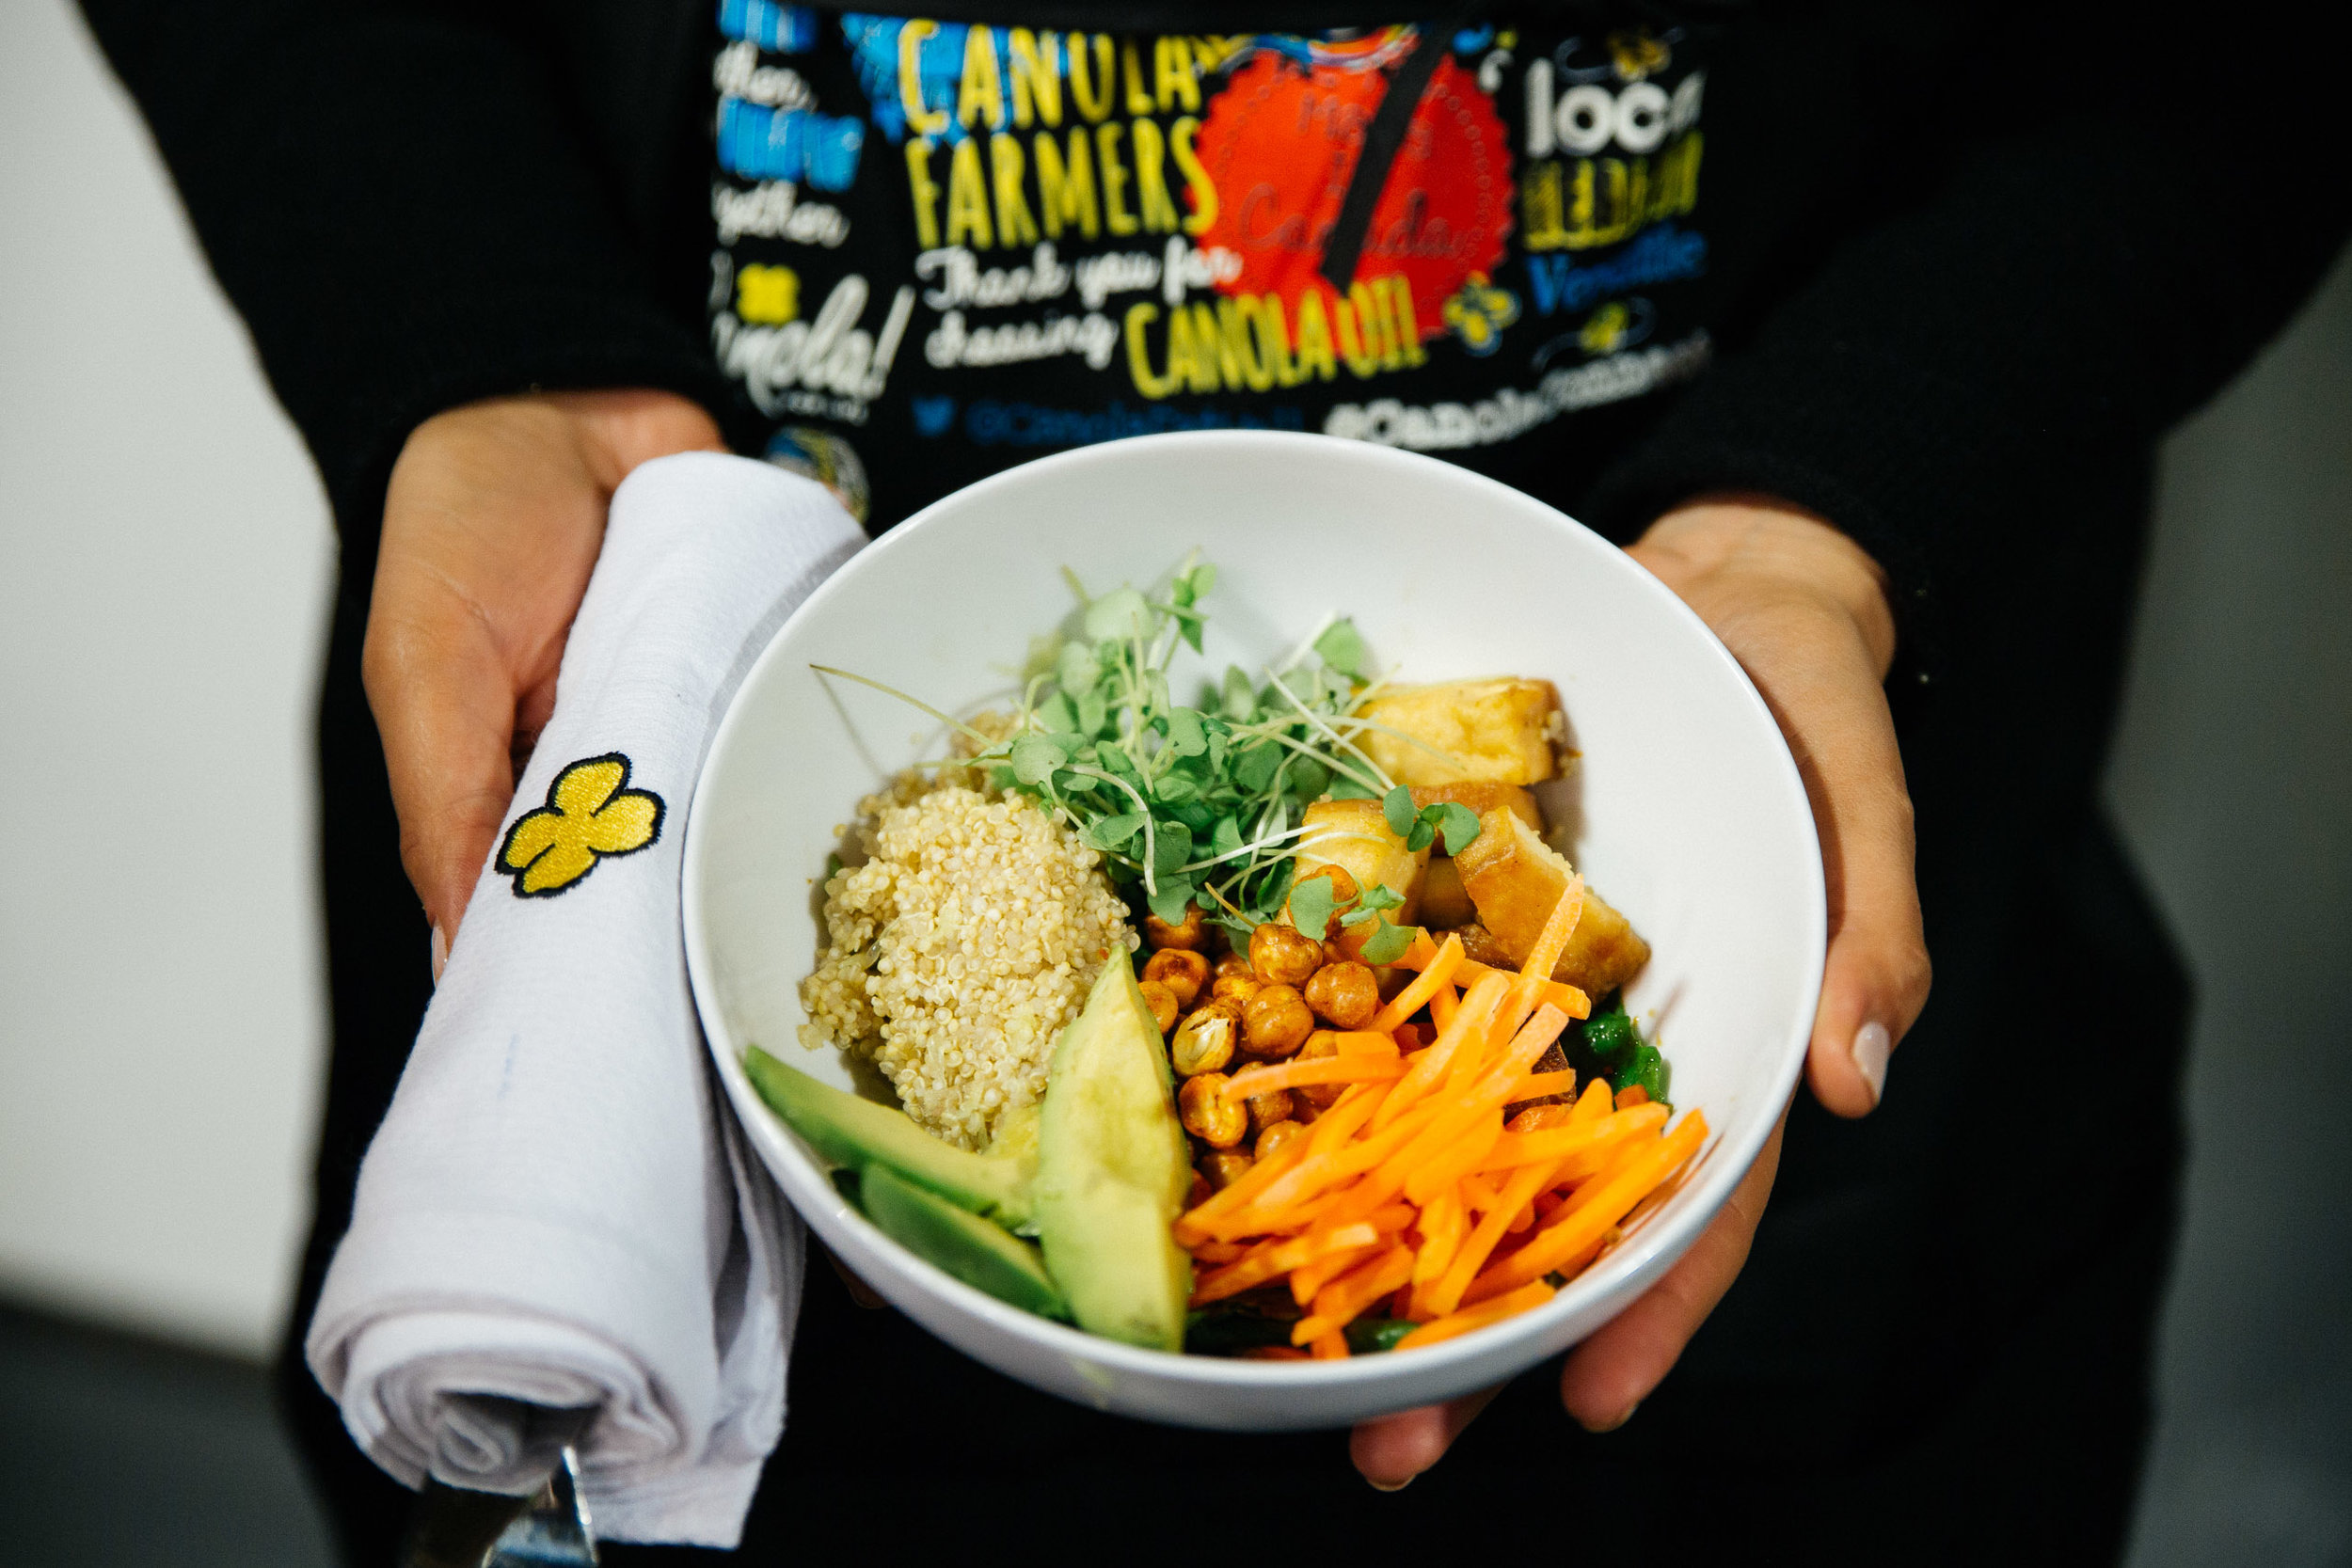 Matty's Workout Power Bowl Baby Kale + Shredded Carrots + Avocado + Quinoa + Crispy Maple Glazed Tofu + Flax Seeds + Roasted Spicy Chickpeas with Canola & Soy Lime Ginger Vinaigrette